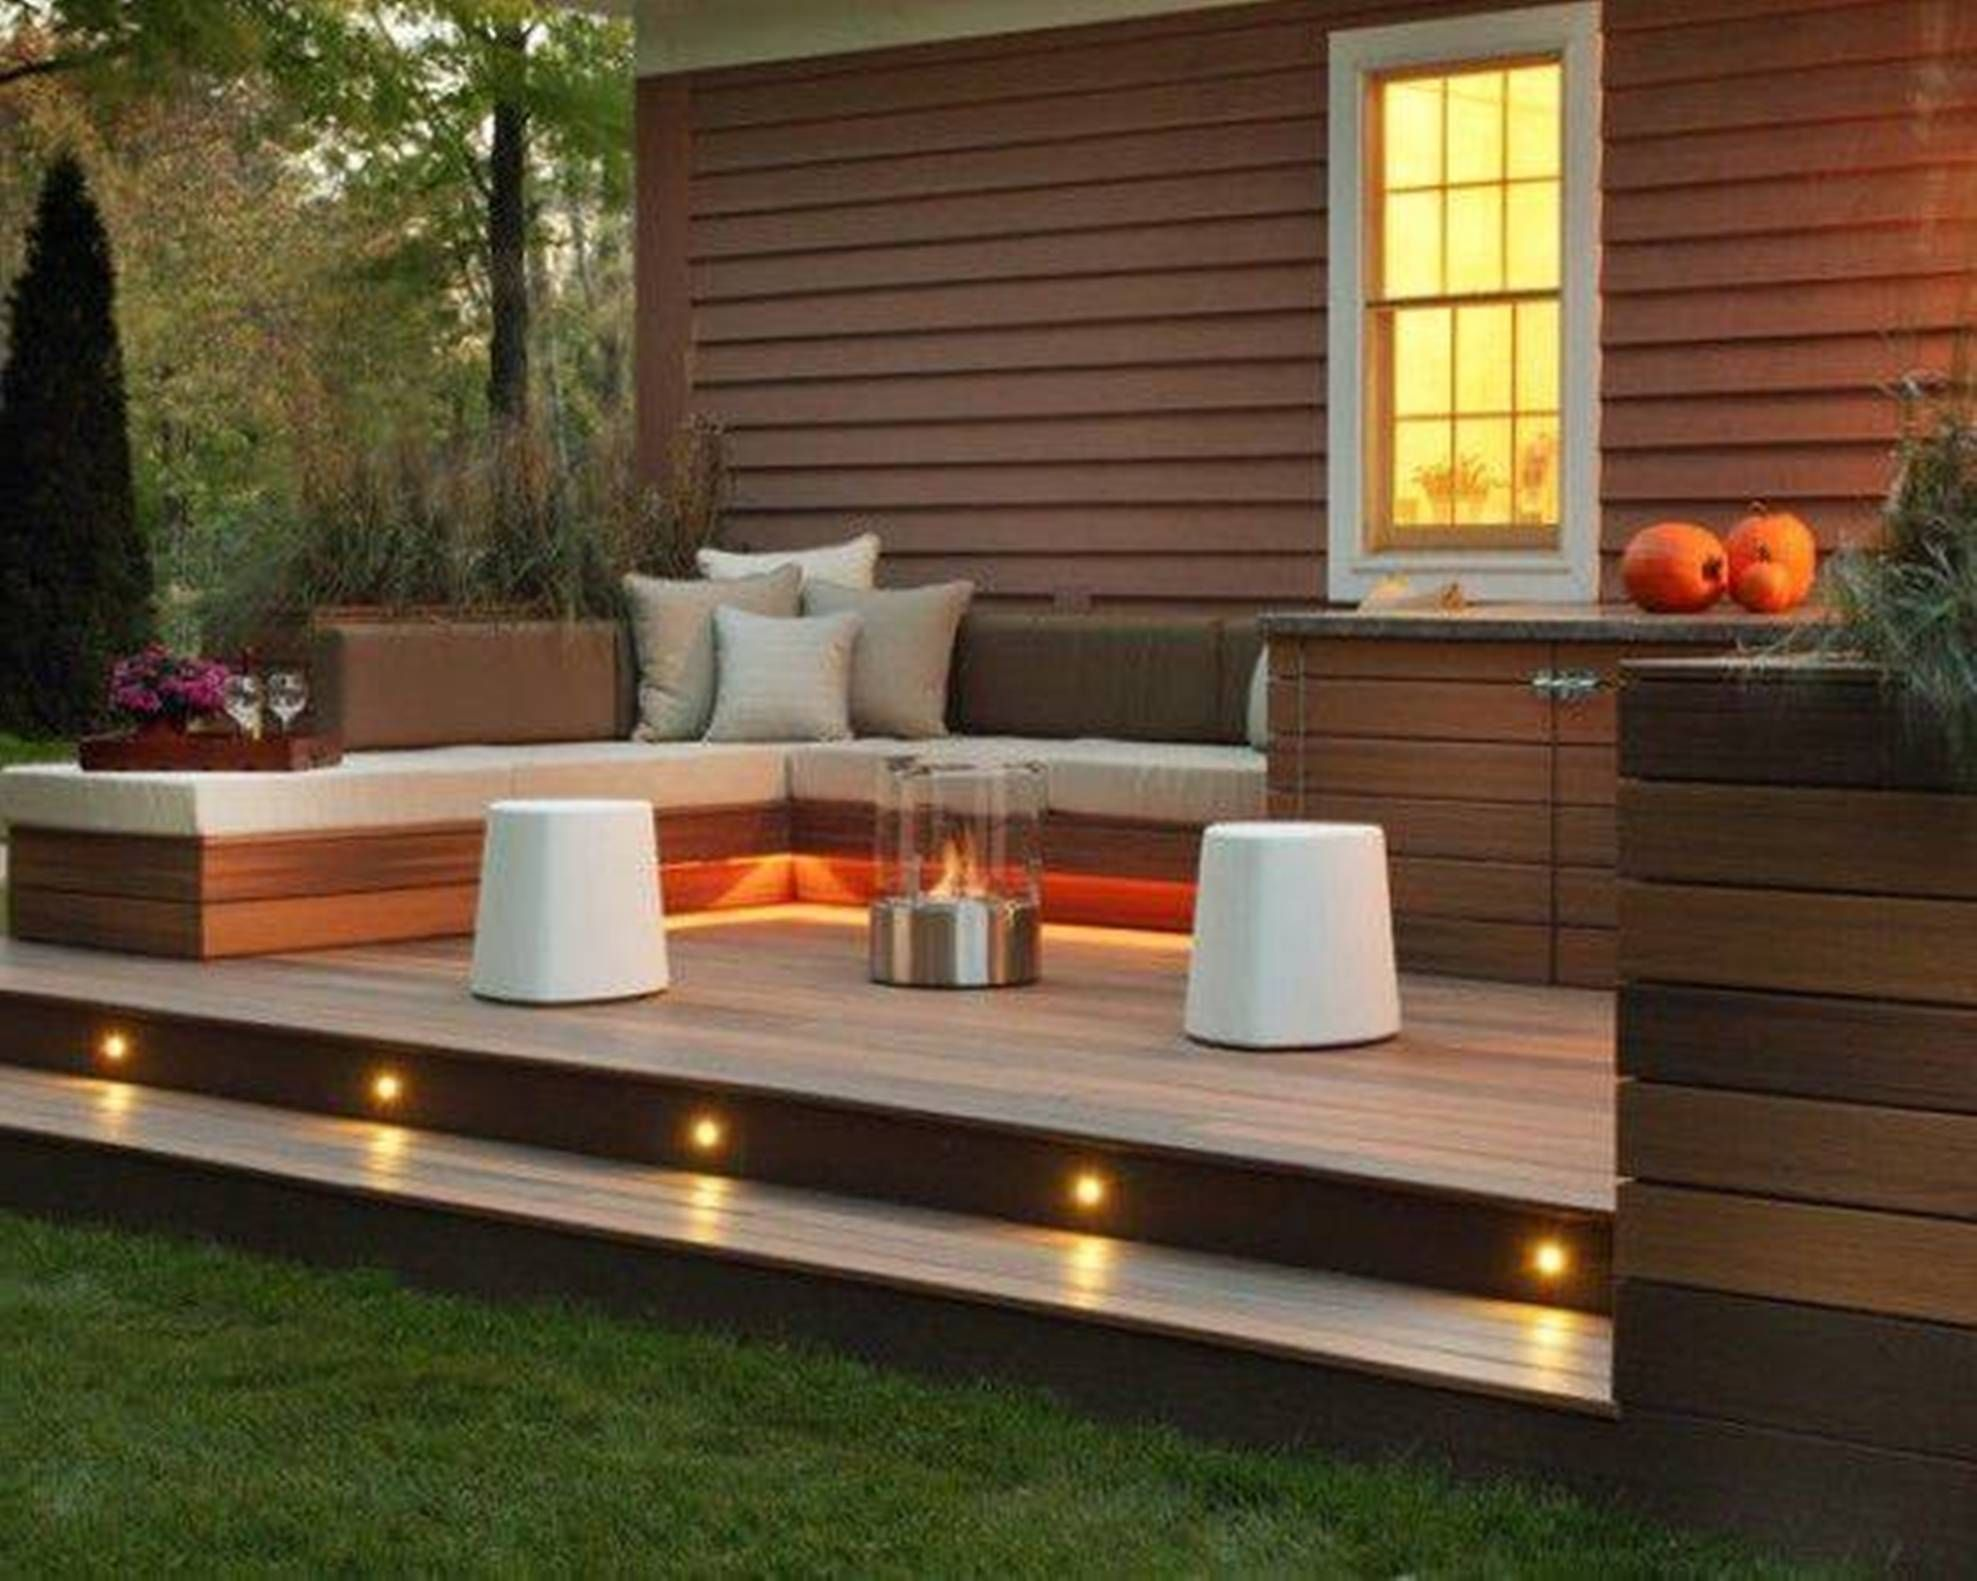 Ideas For Deck Designs simple backyard deck designs deck design ideas woohome 4 picture of dream deck design ideas deck Landscaping And Outdoor Building Great Small Backyard Deck Designs Small Backyard Deck Designs With